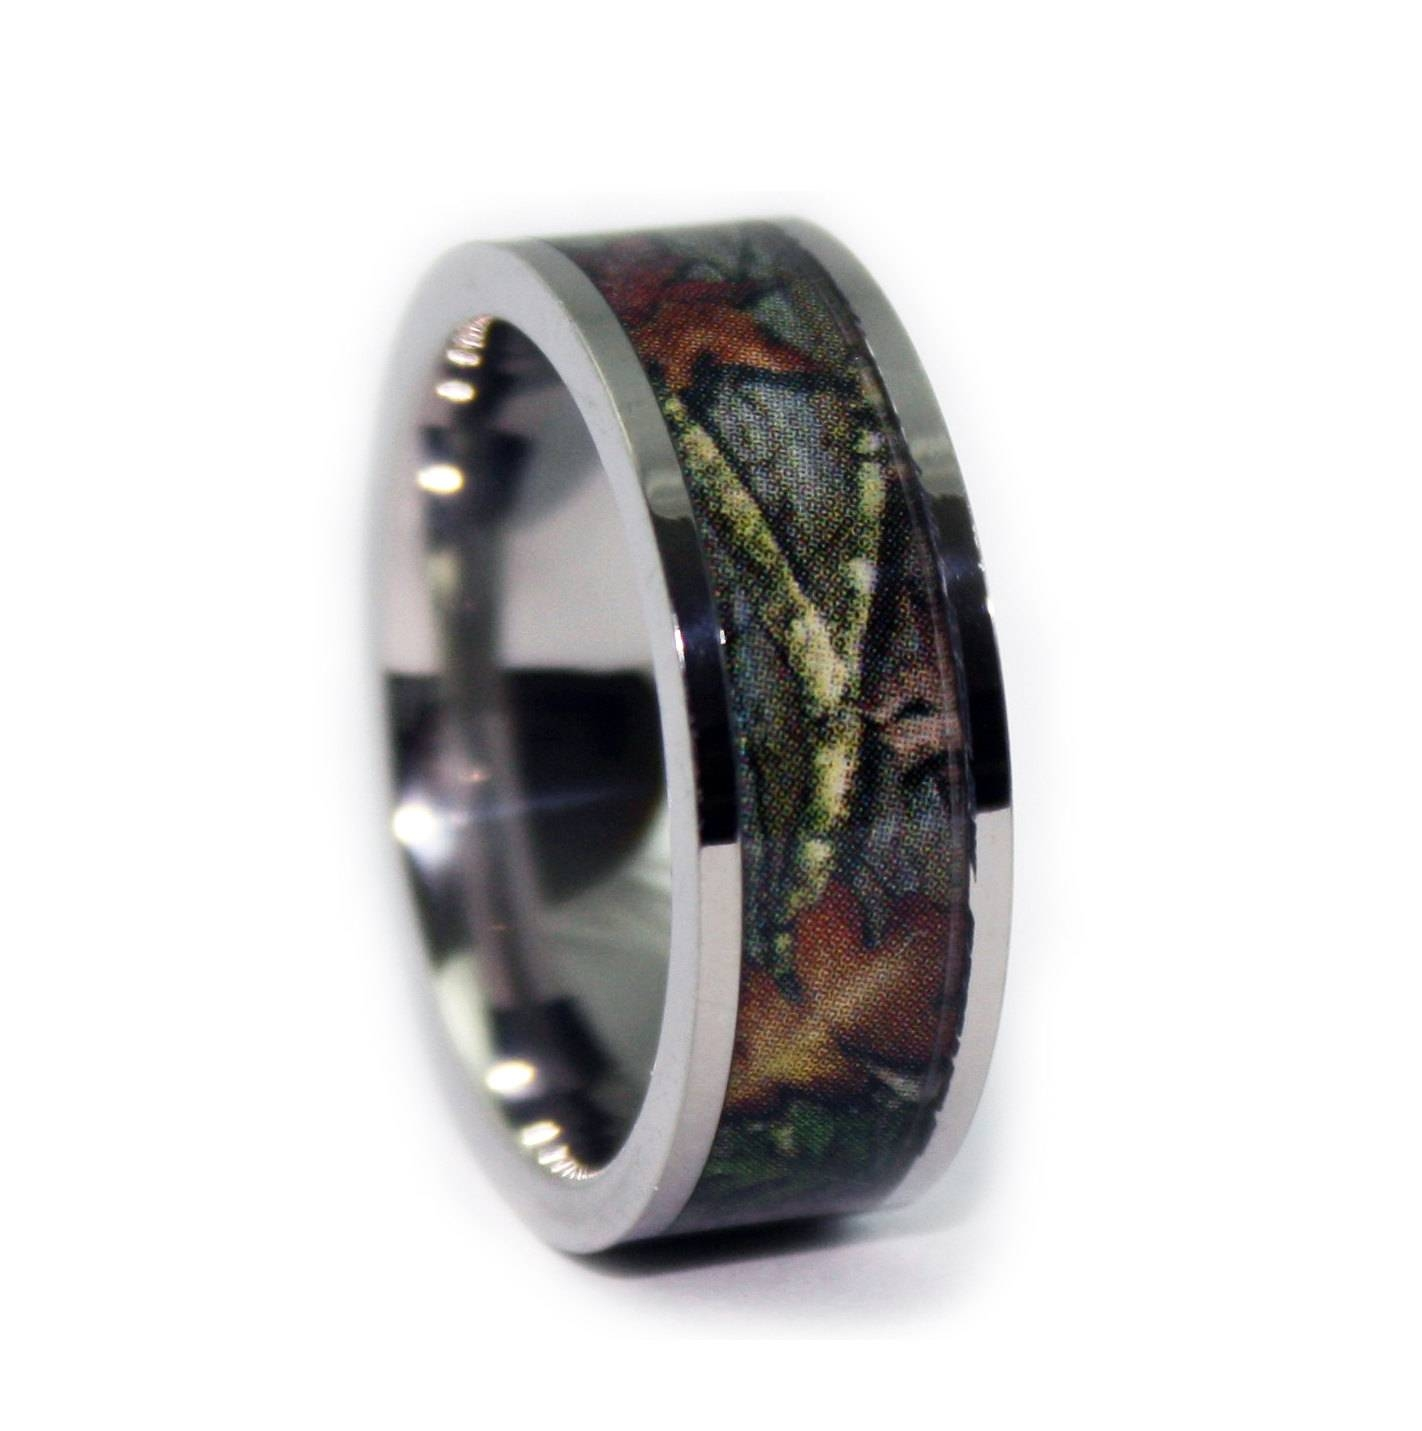 Camo Wedding Ringsone Camo Flat Titanium Mens Wedding Regarding Men's Outdoor Wedding Bands (View 5 of 15)